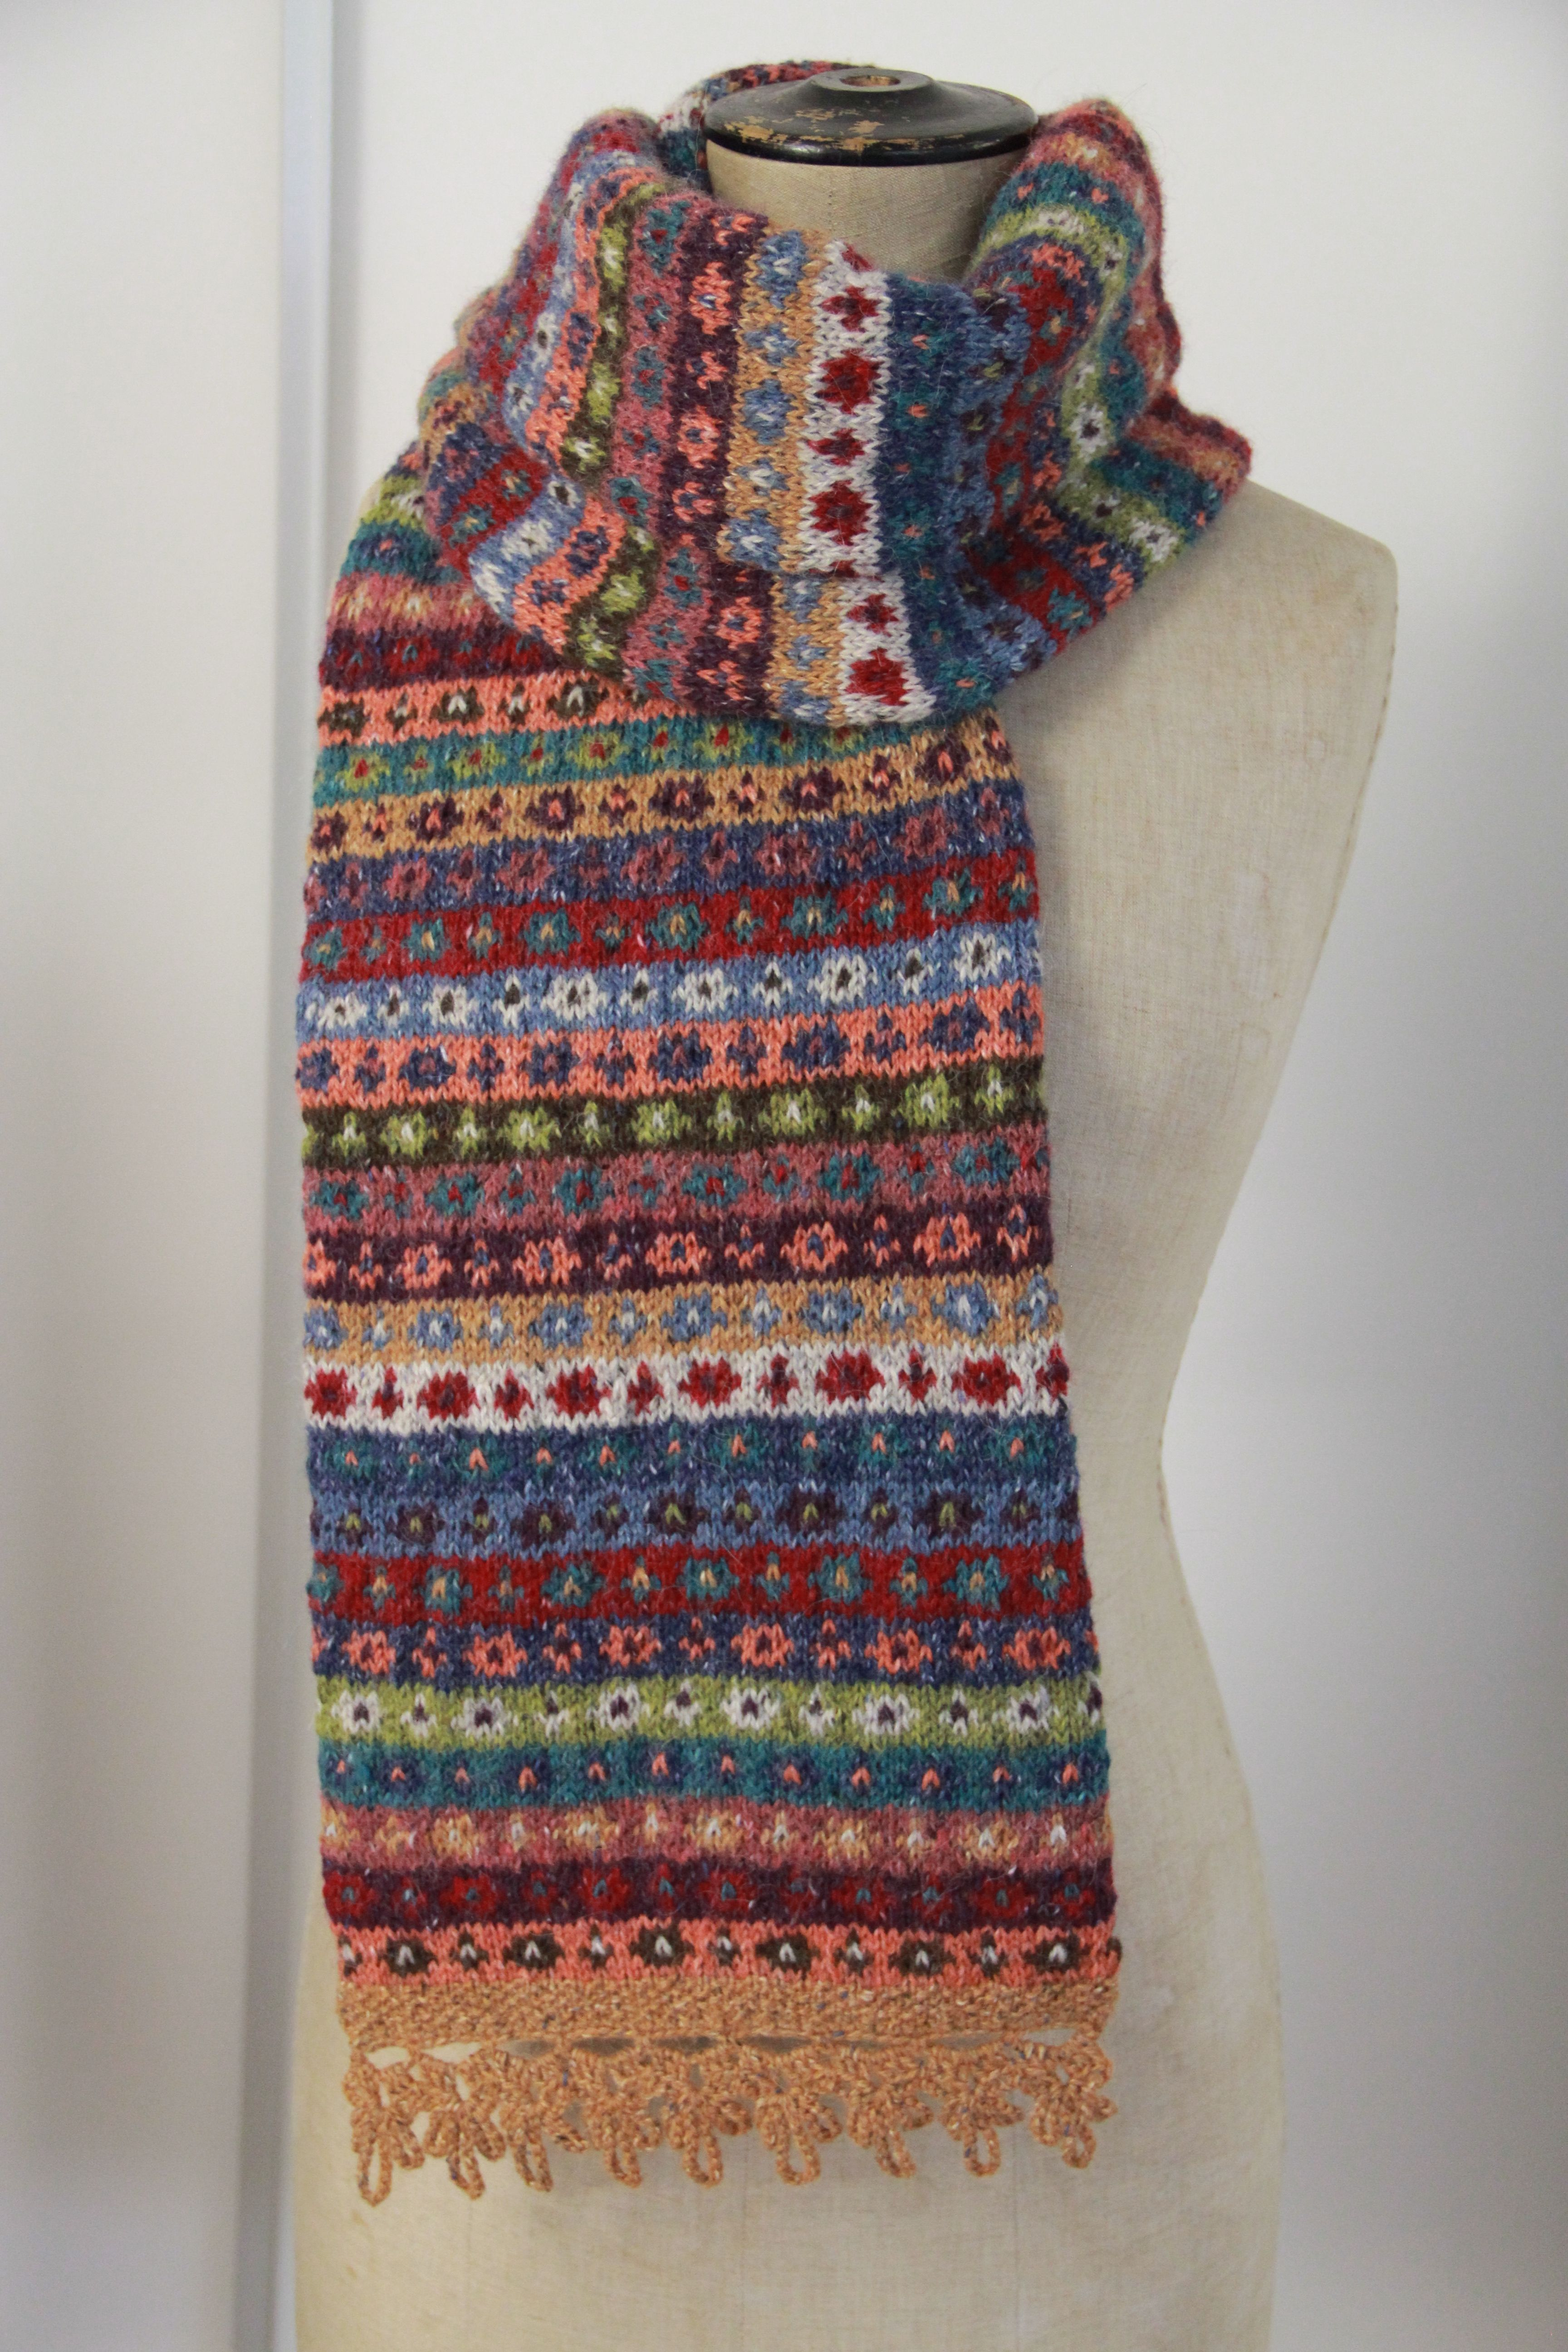 Knitted fair isle knit wit pinterest fair isles knitted fair isle bankloansurffo Images